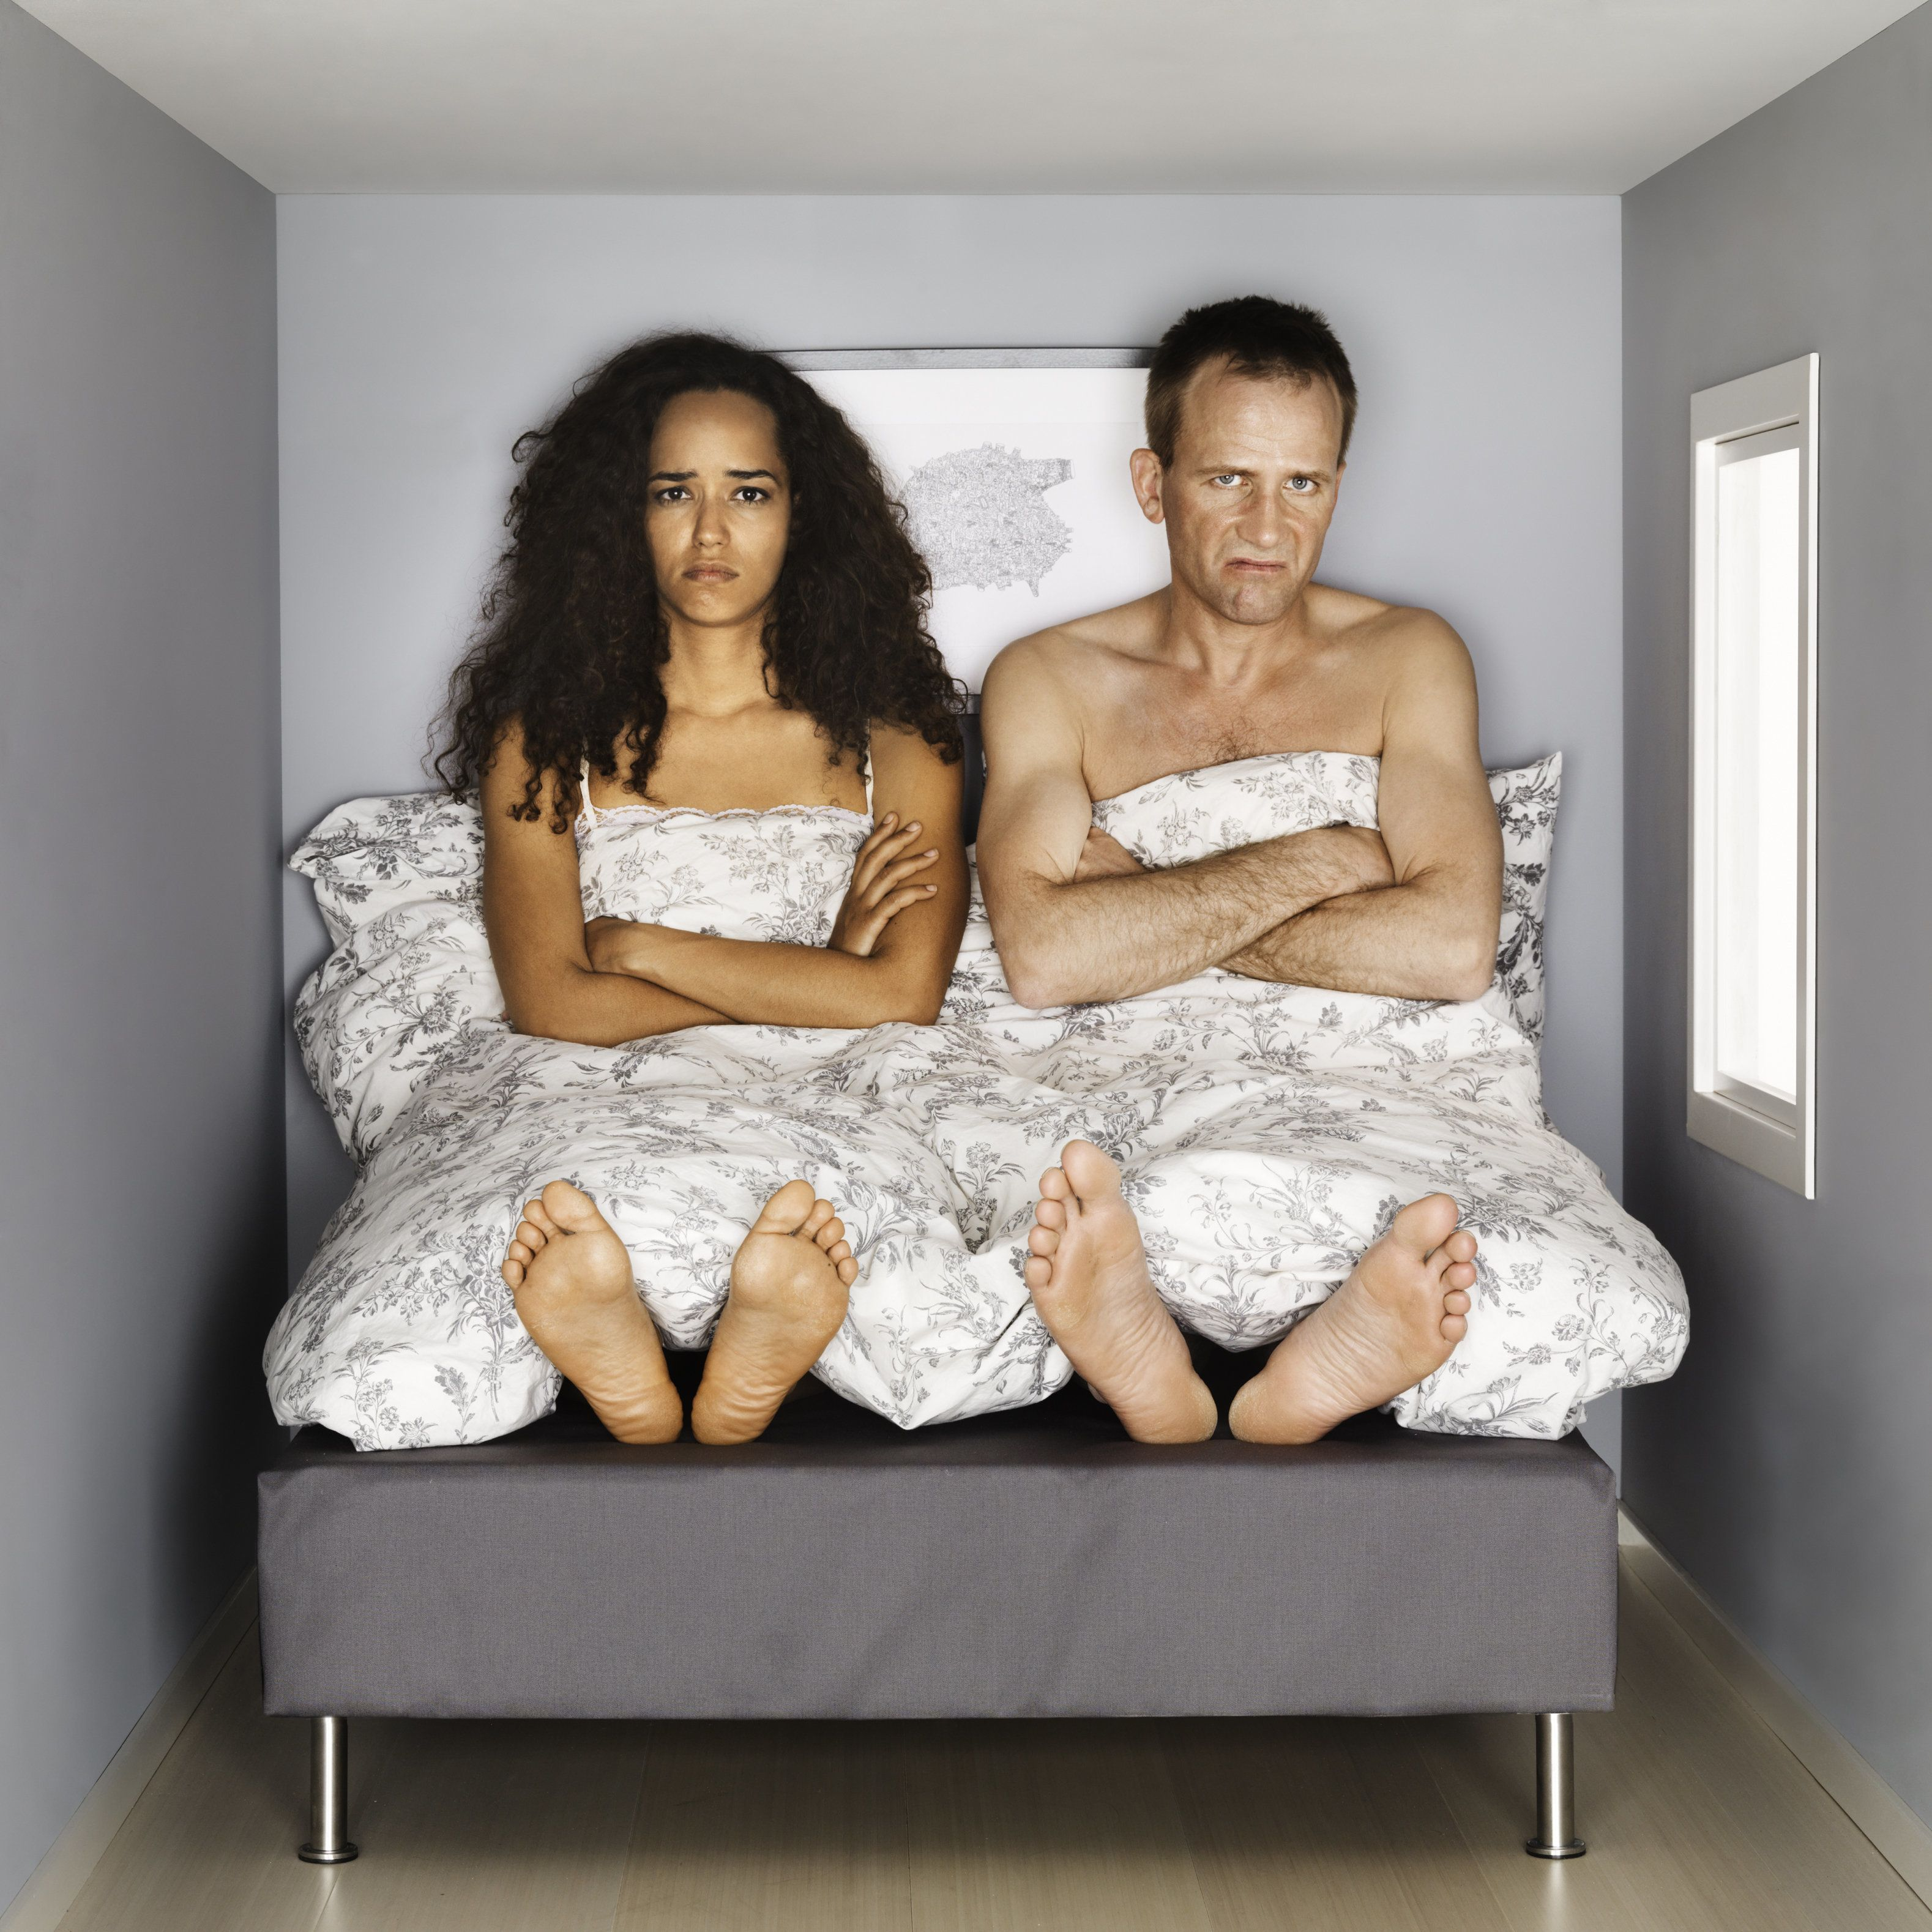 """I love my husband dearly as long as I get enough sleep. He snores and stays up later than I do...."